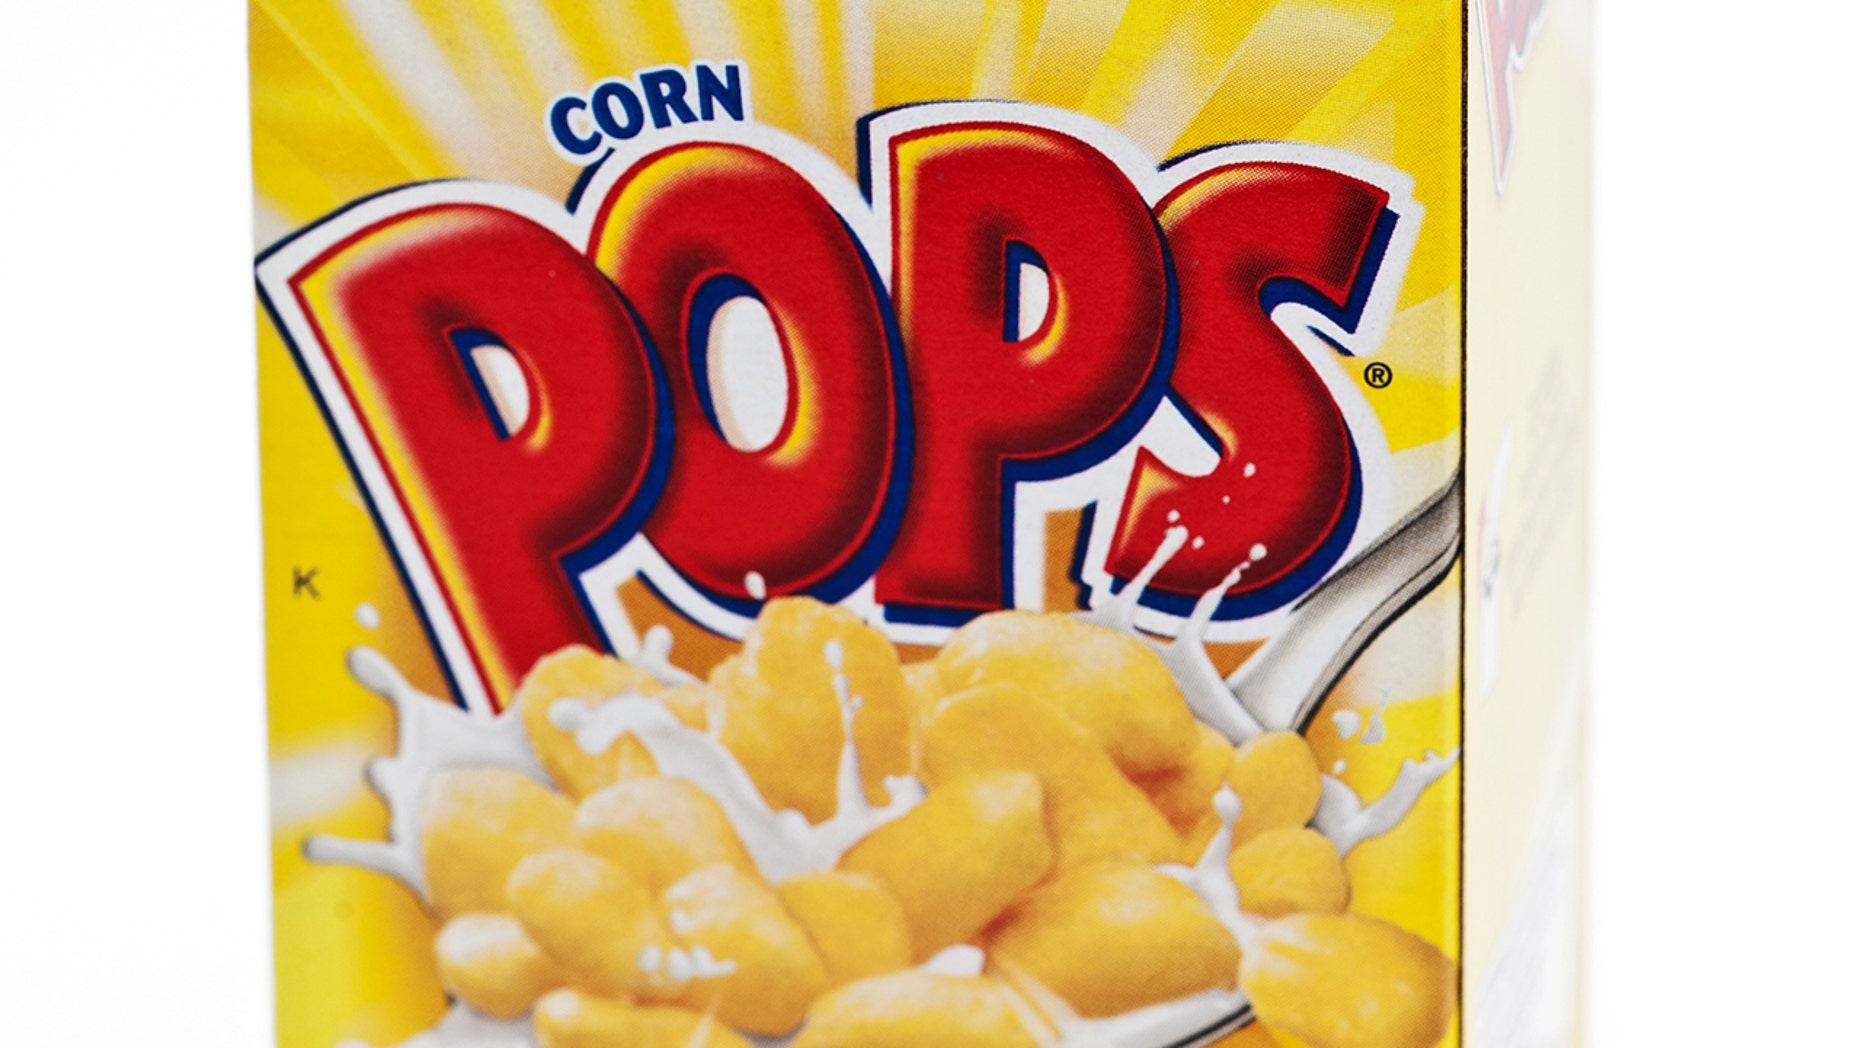 Kellogg's said they'll be replacing the back-of-the-box artwork soon.